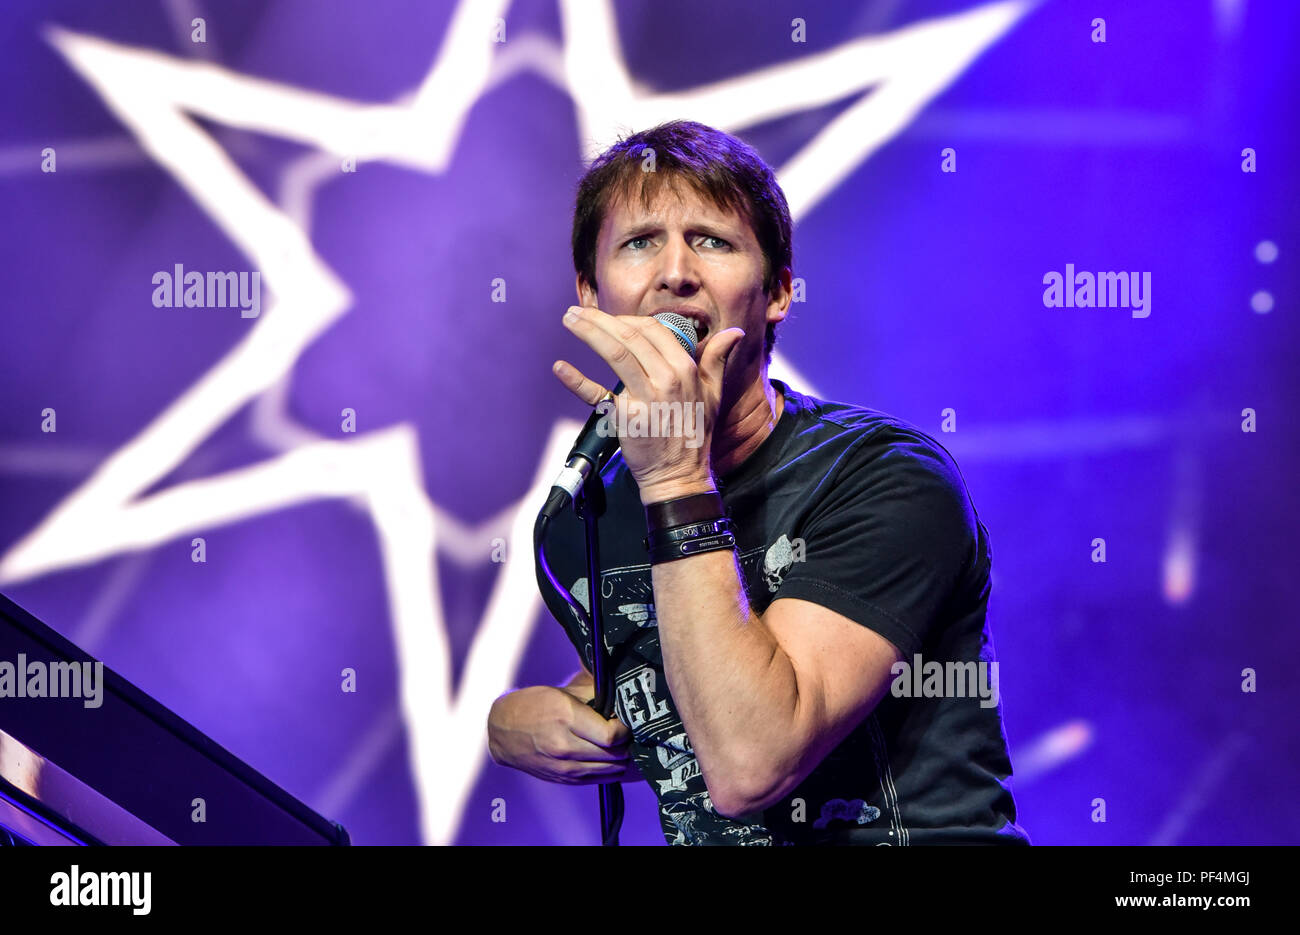 Germany, Coburg, HUK Coburg Open Air - 18 Aug 2018 - Concert, James Blunt - Bild: James Blunt playing his set at the HUK Coburg Open Air 2018.  Alamy Live News Entertainment / Credit: Ryan Evans Credit: Ryan Evans/Alamy Live News - Stock Image